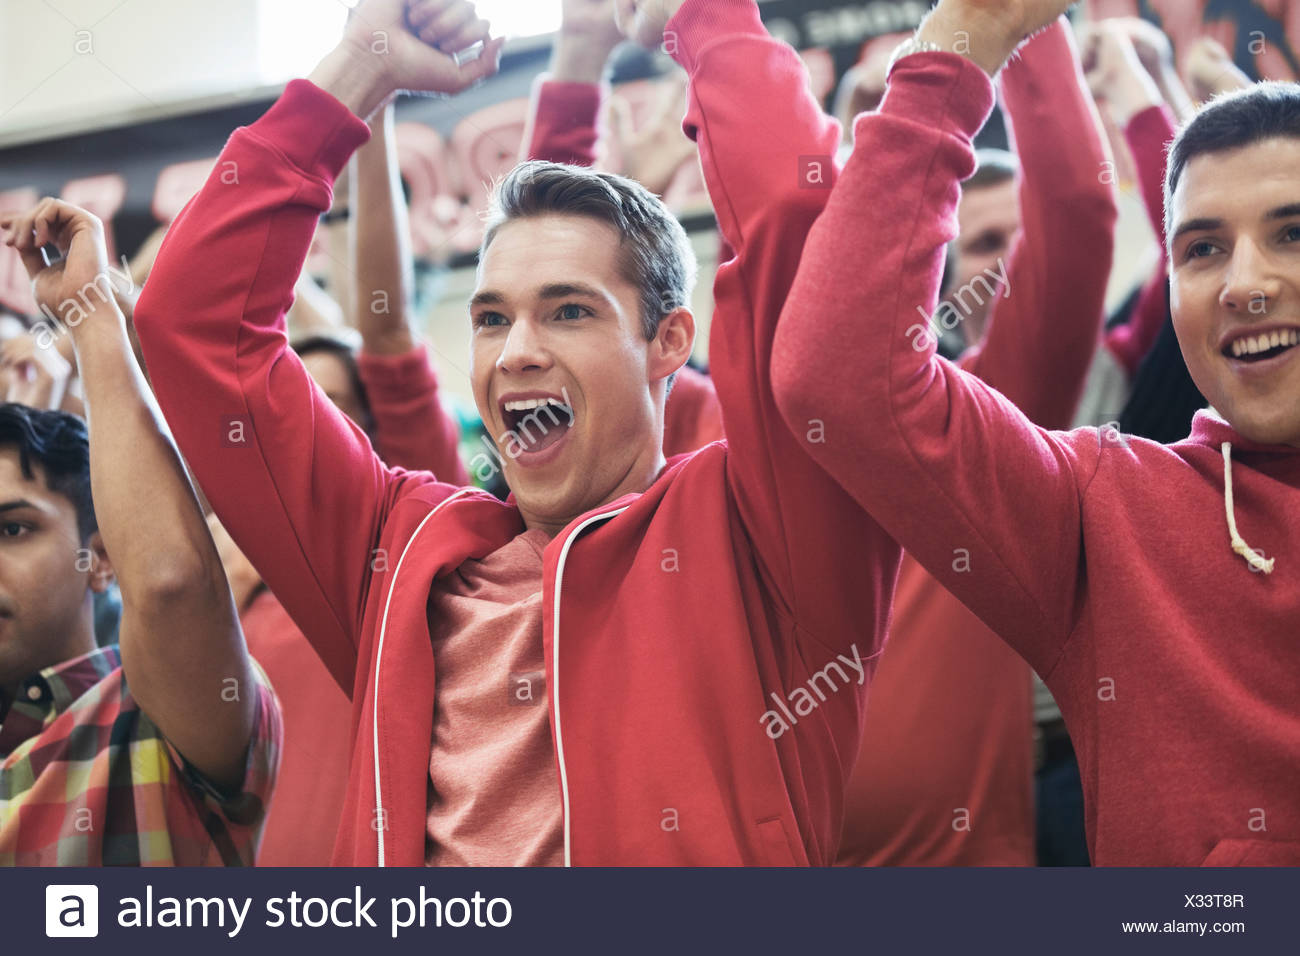 Group of students cheering at college sporting event - Stock Image